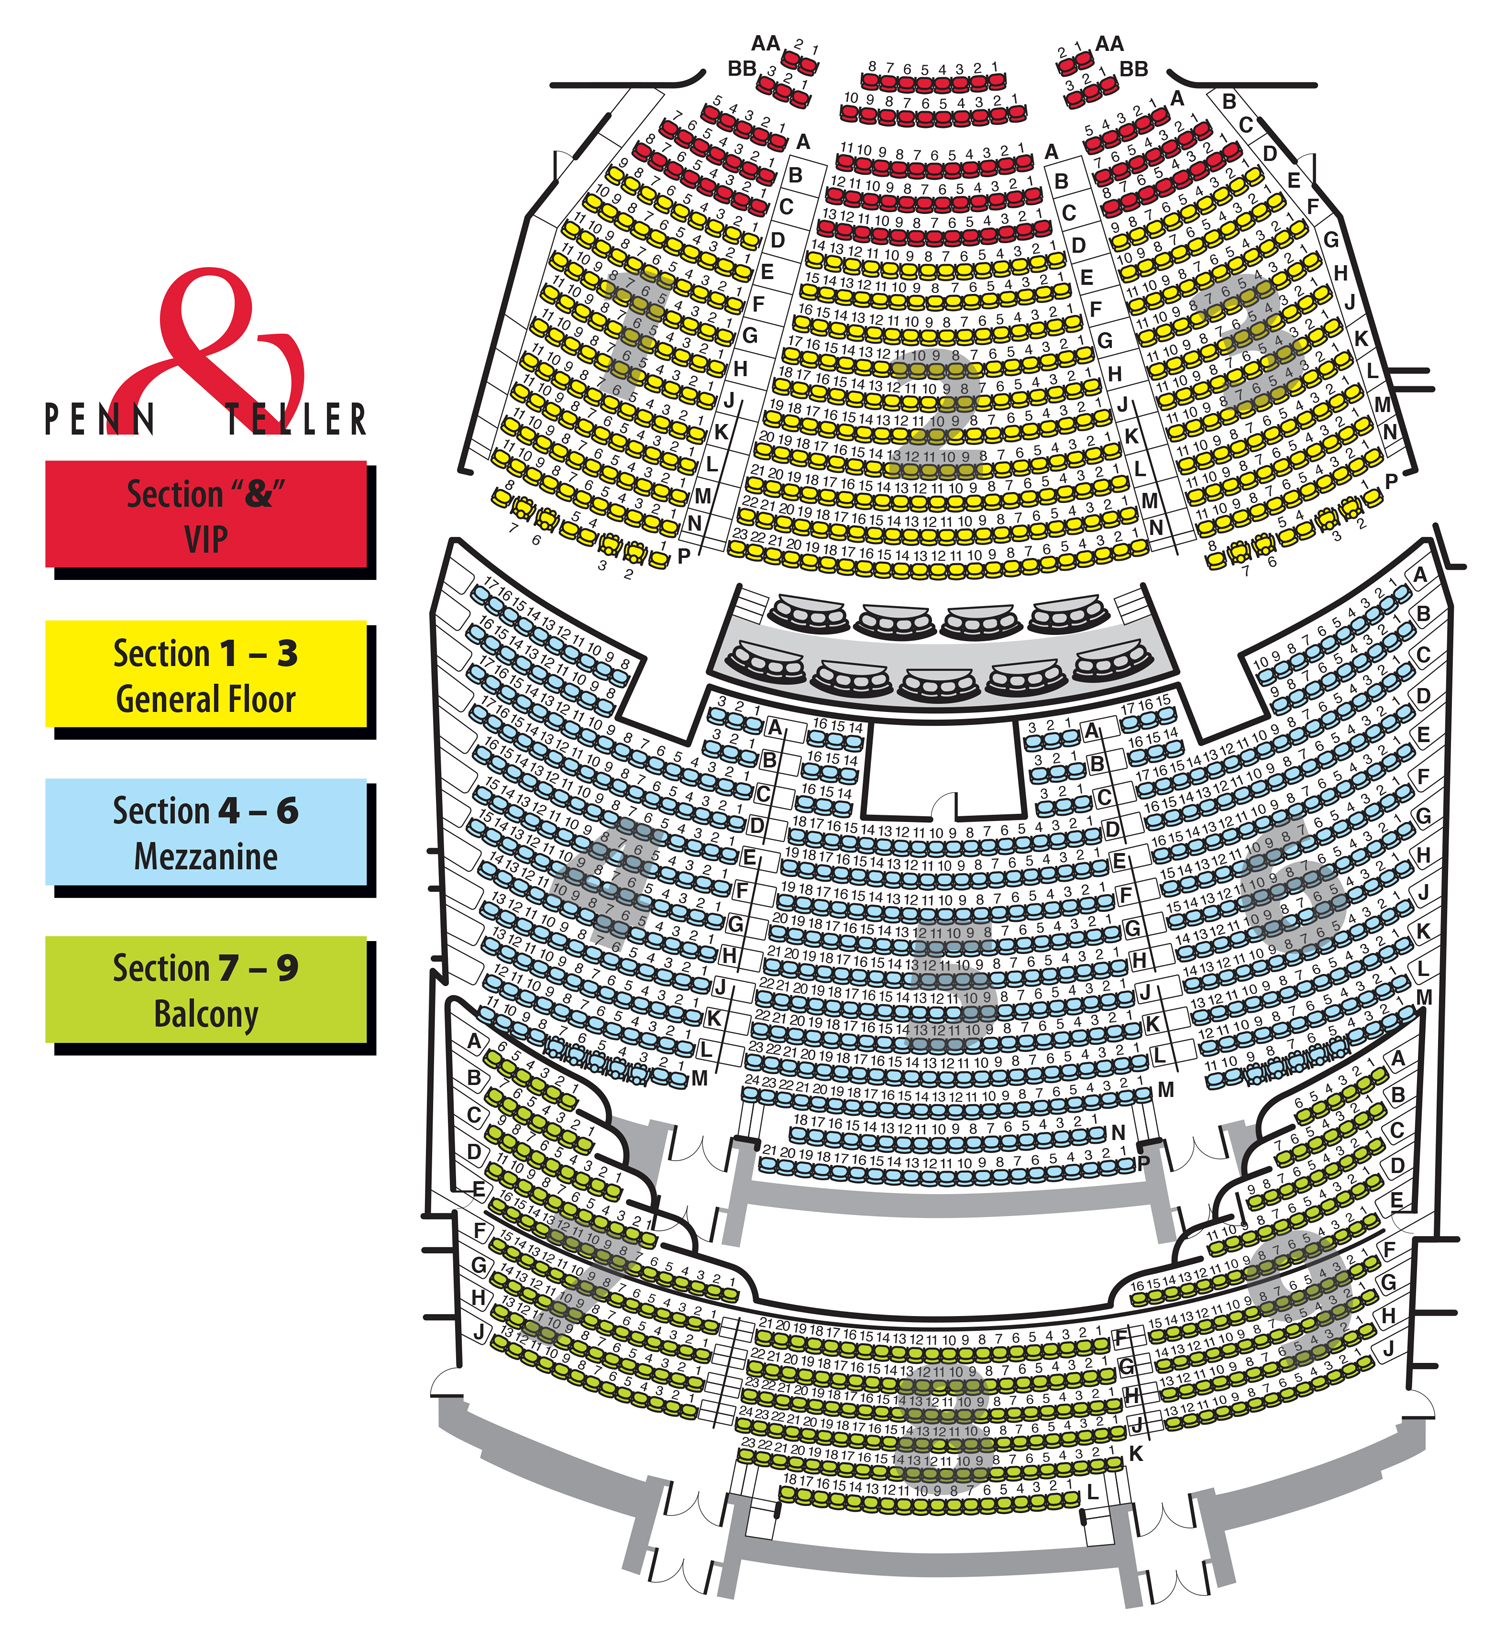 Penn and teller seating chart kope impulsar co